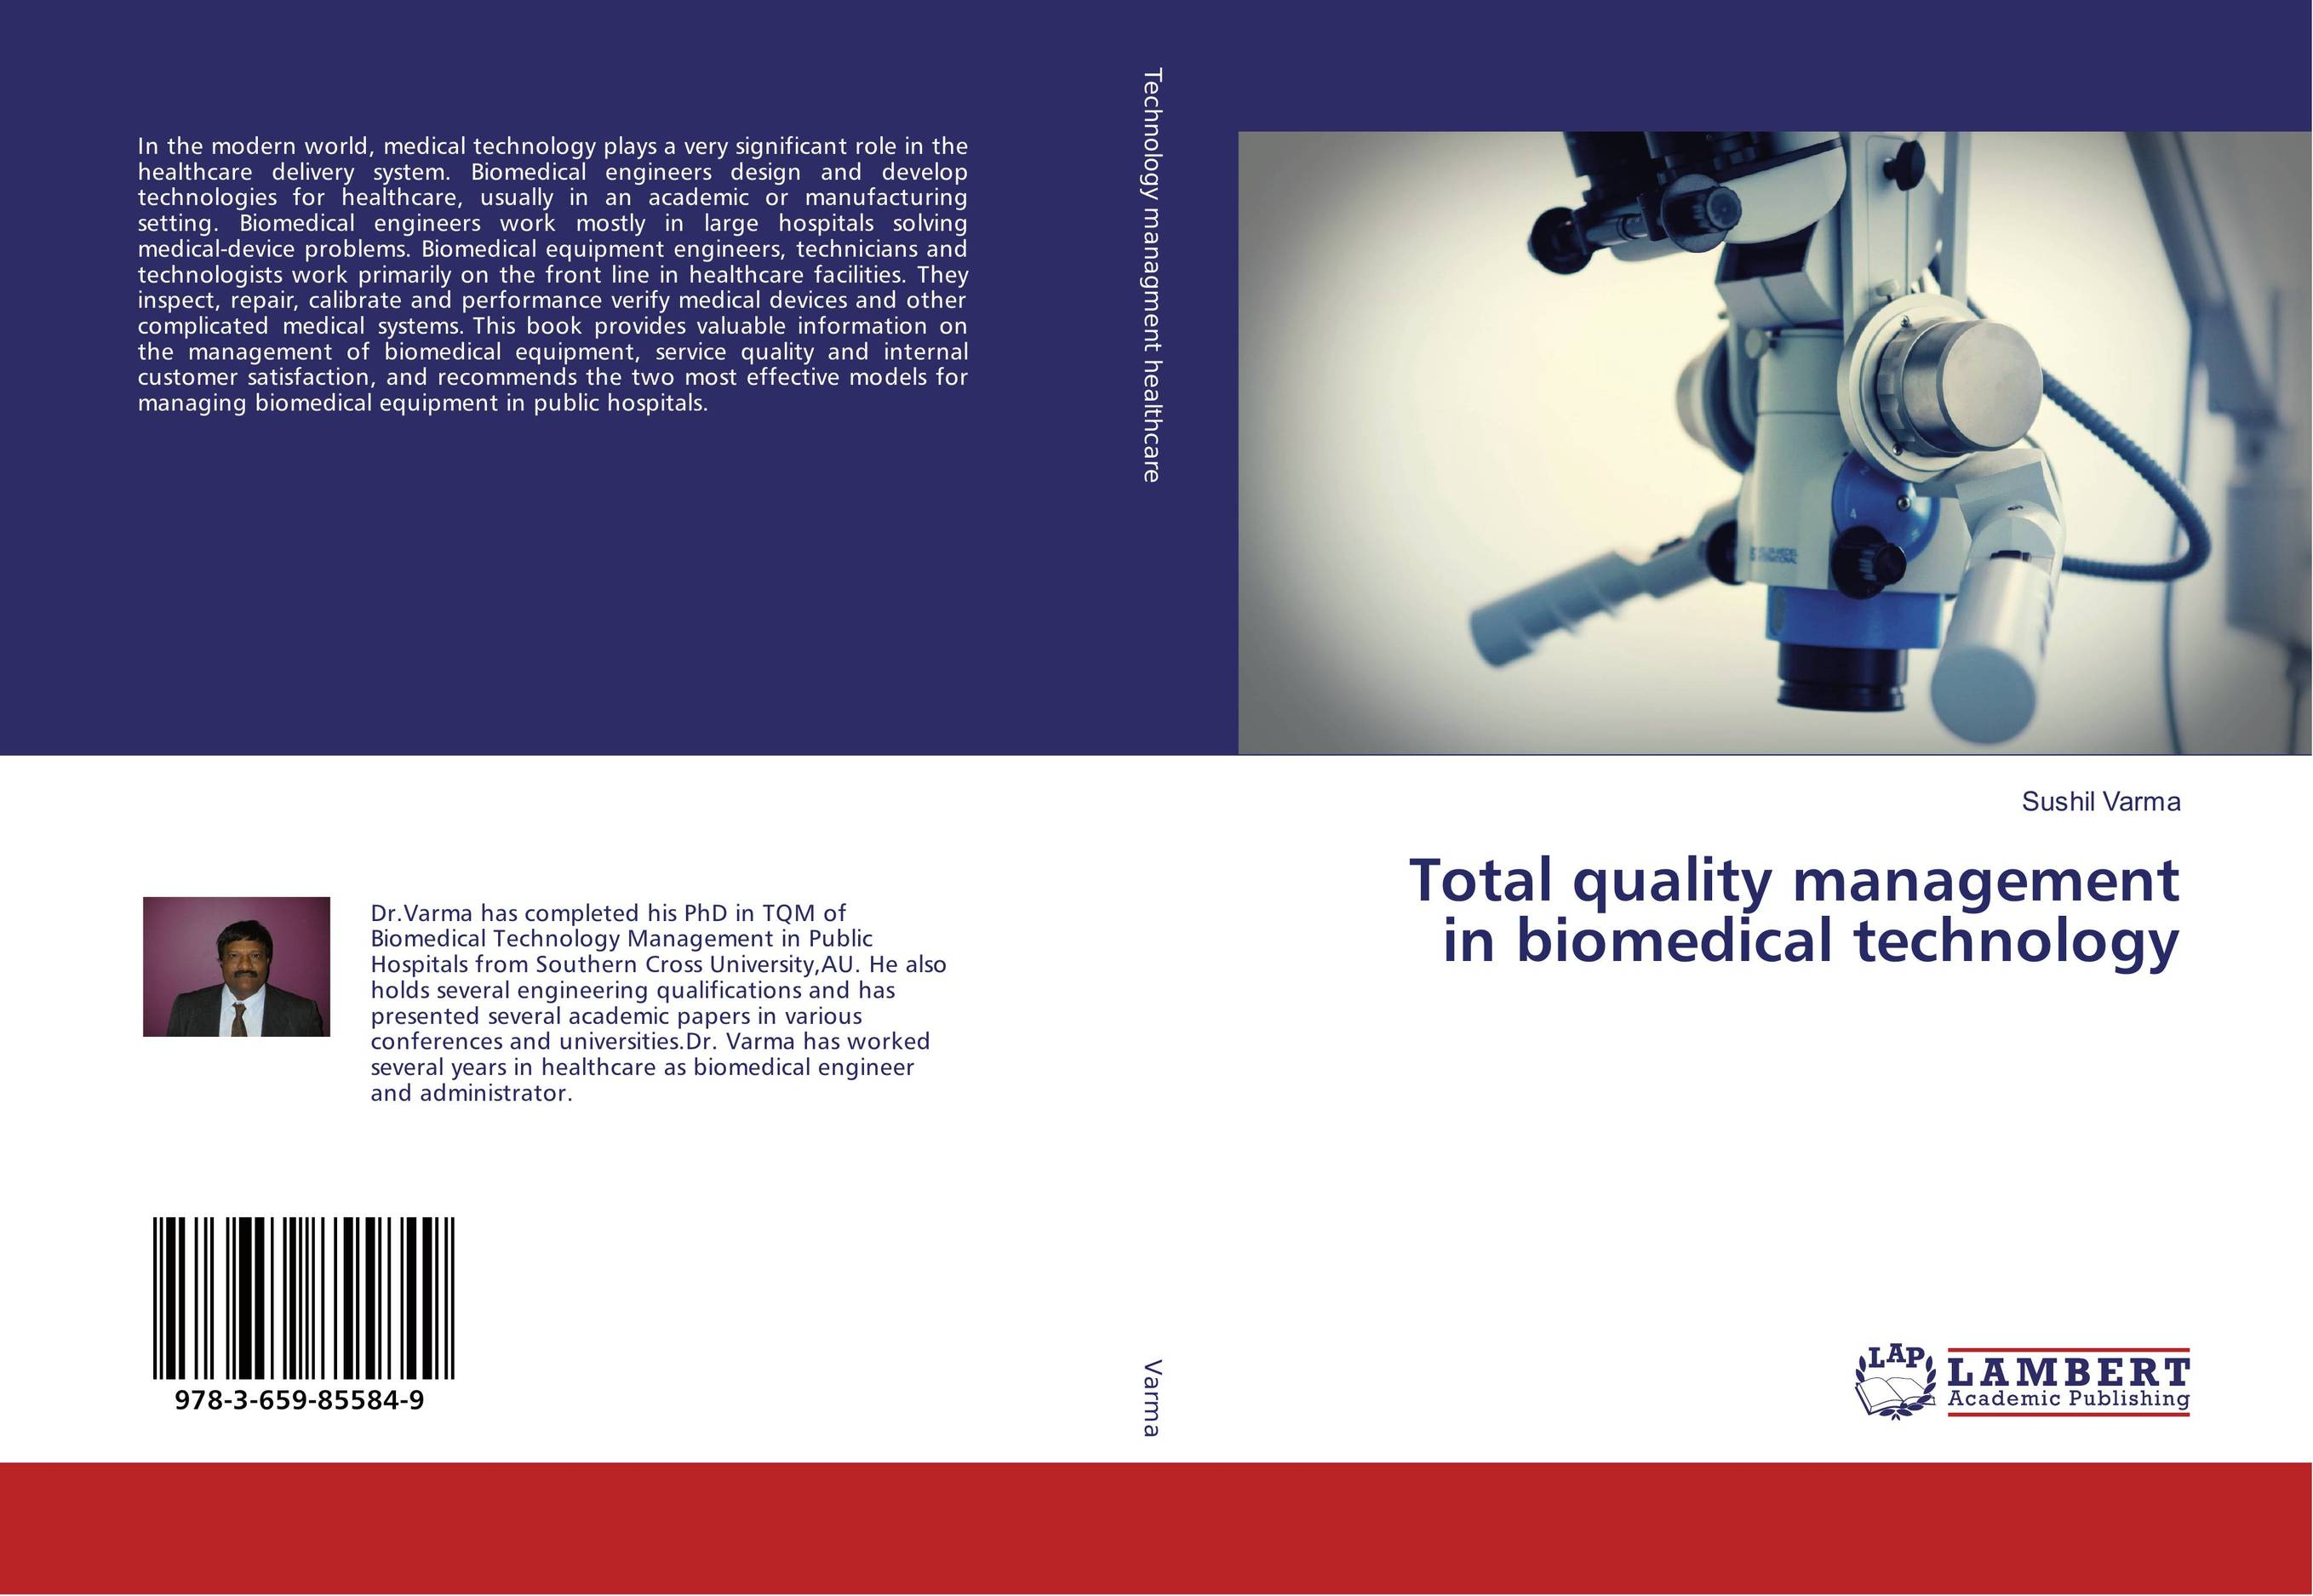 Total quality management in biomedical technology